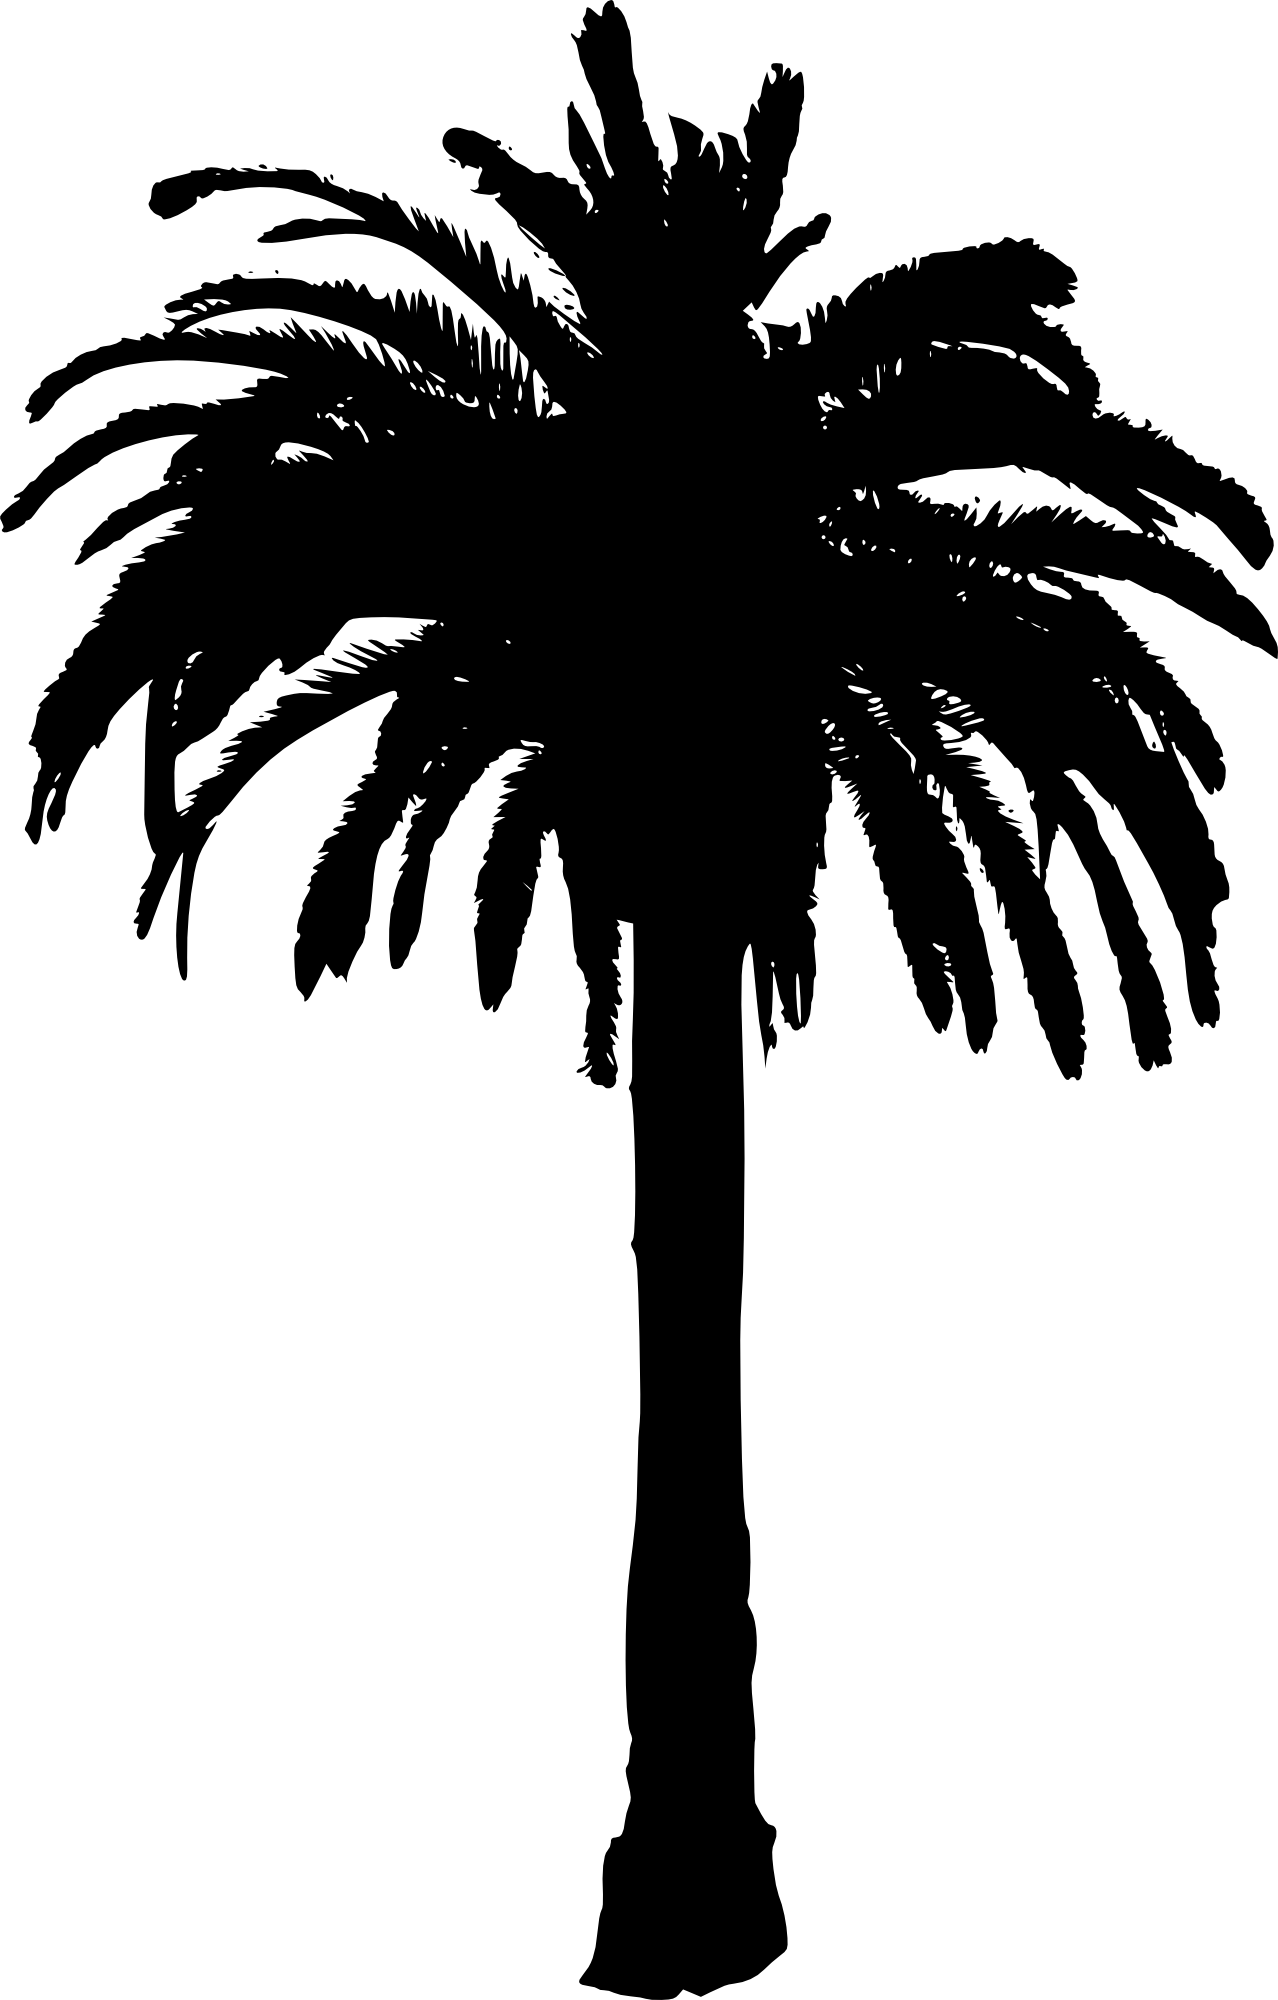 palm tree background png